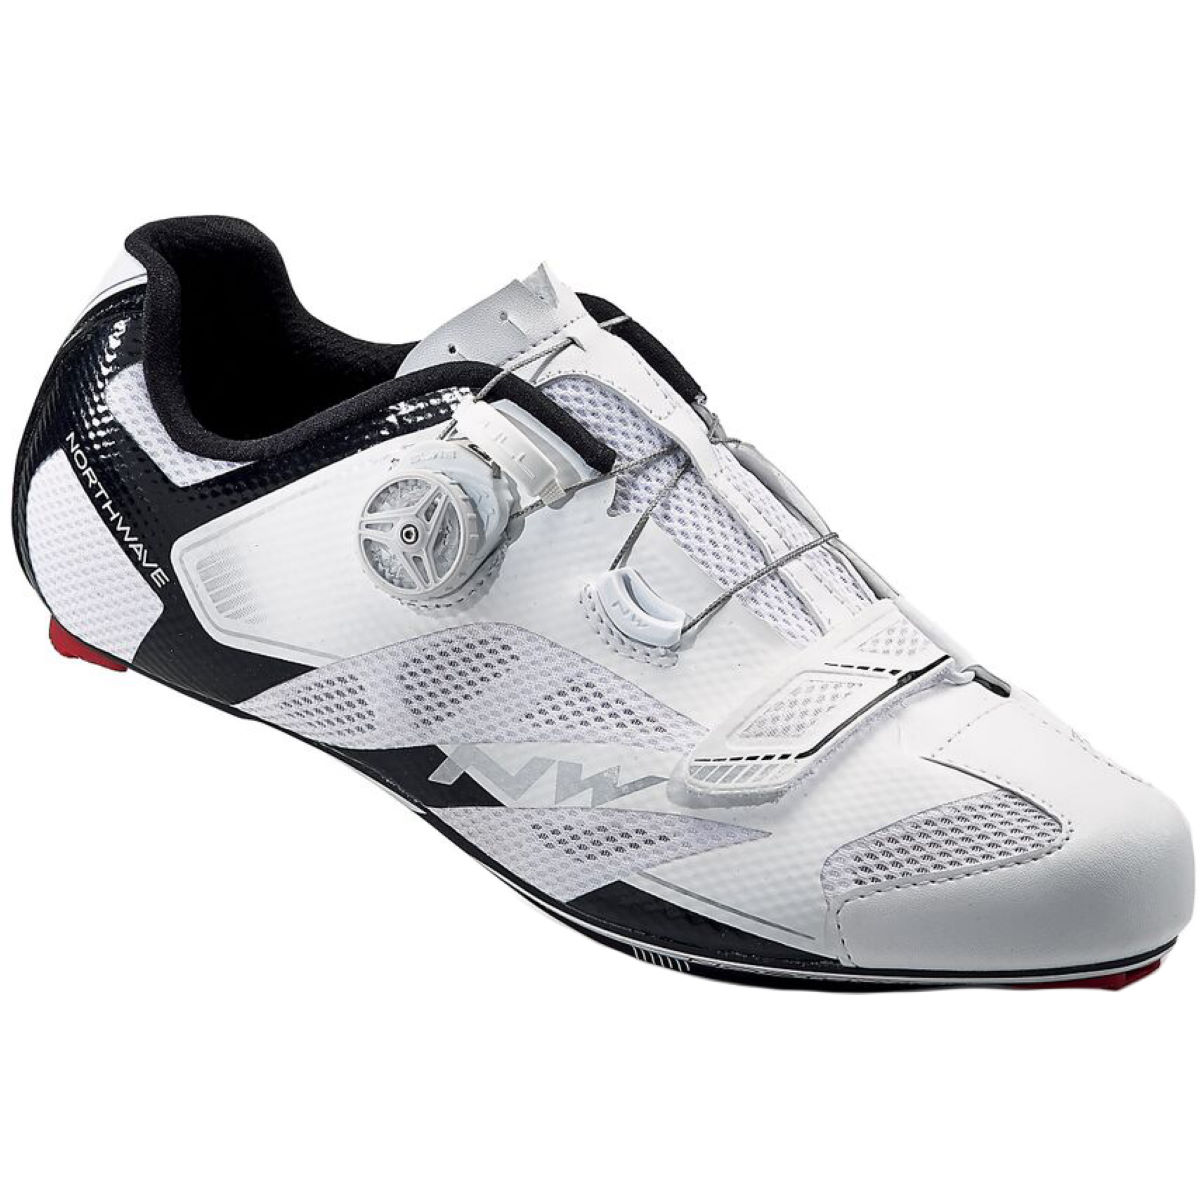 Northwave Sonic 2 Carbon - 44 White/Black | Road Shoes